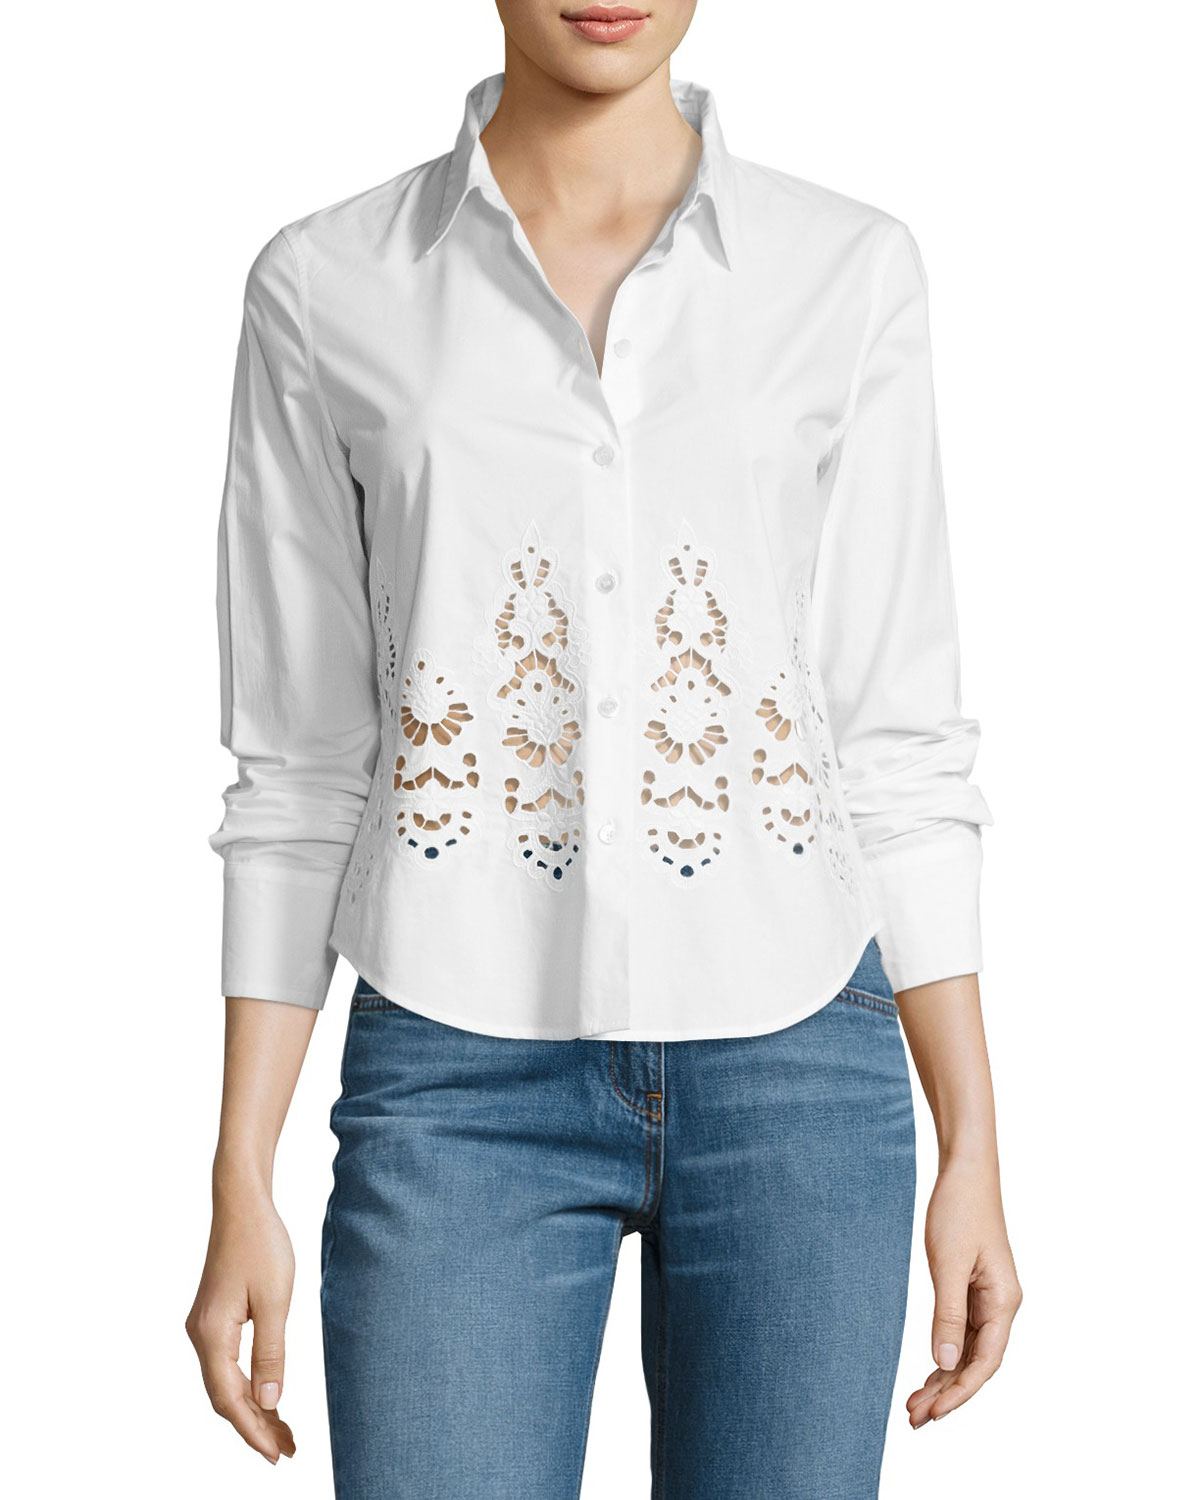 Weylend Poplin Embroidered Eyelet Shirt, White